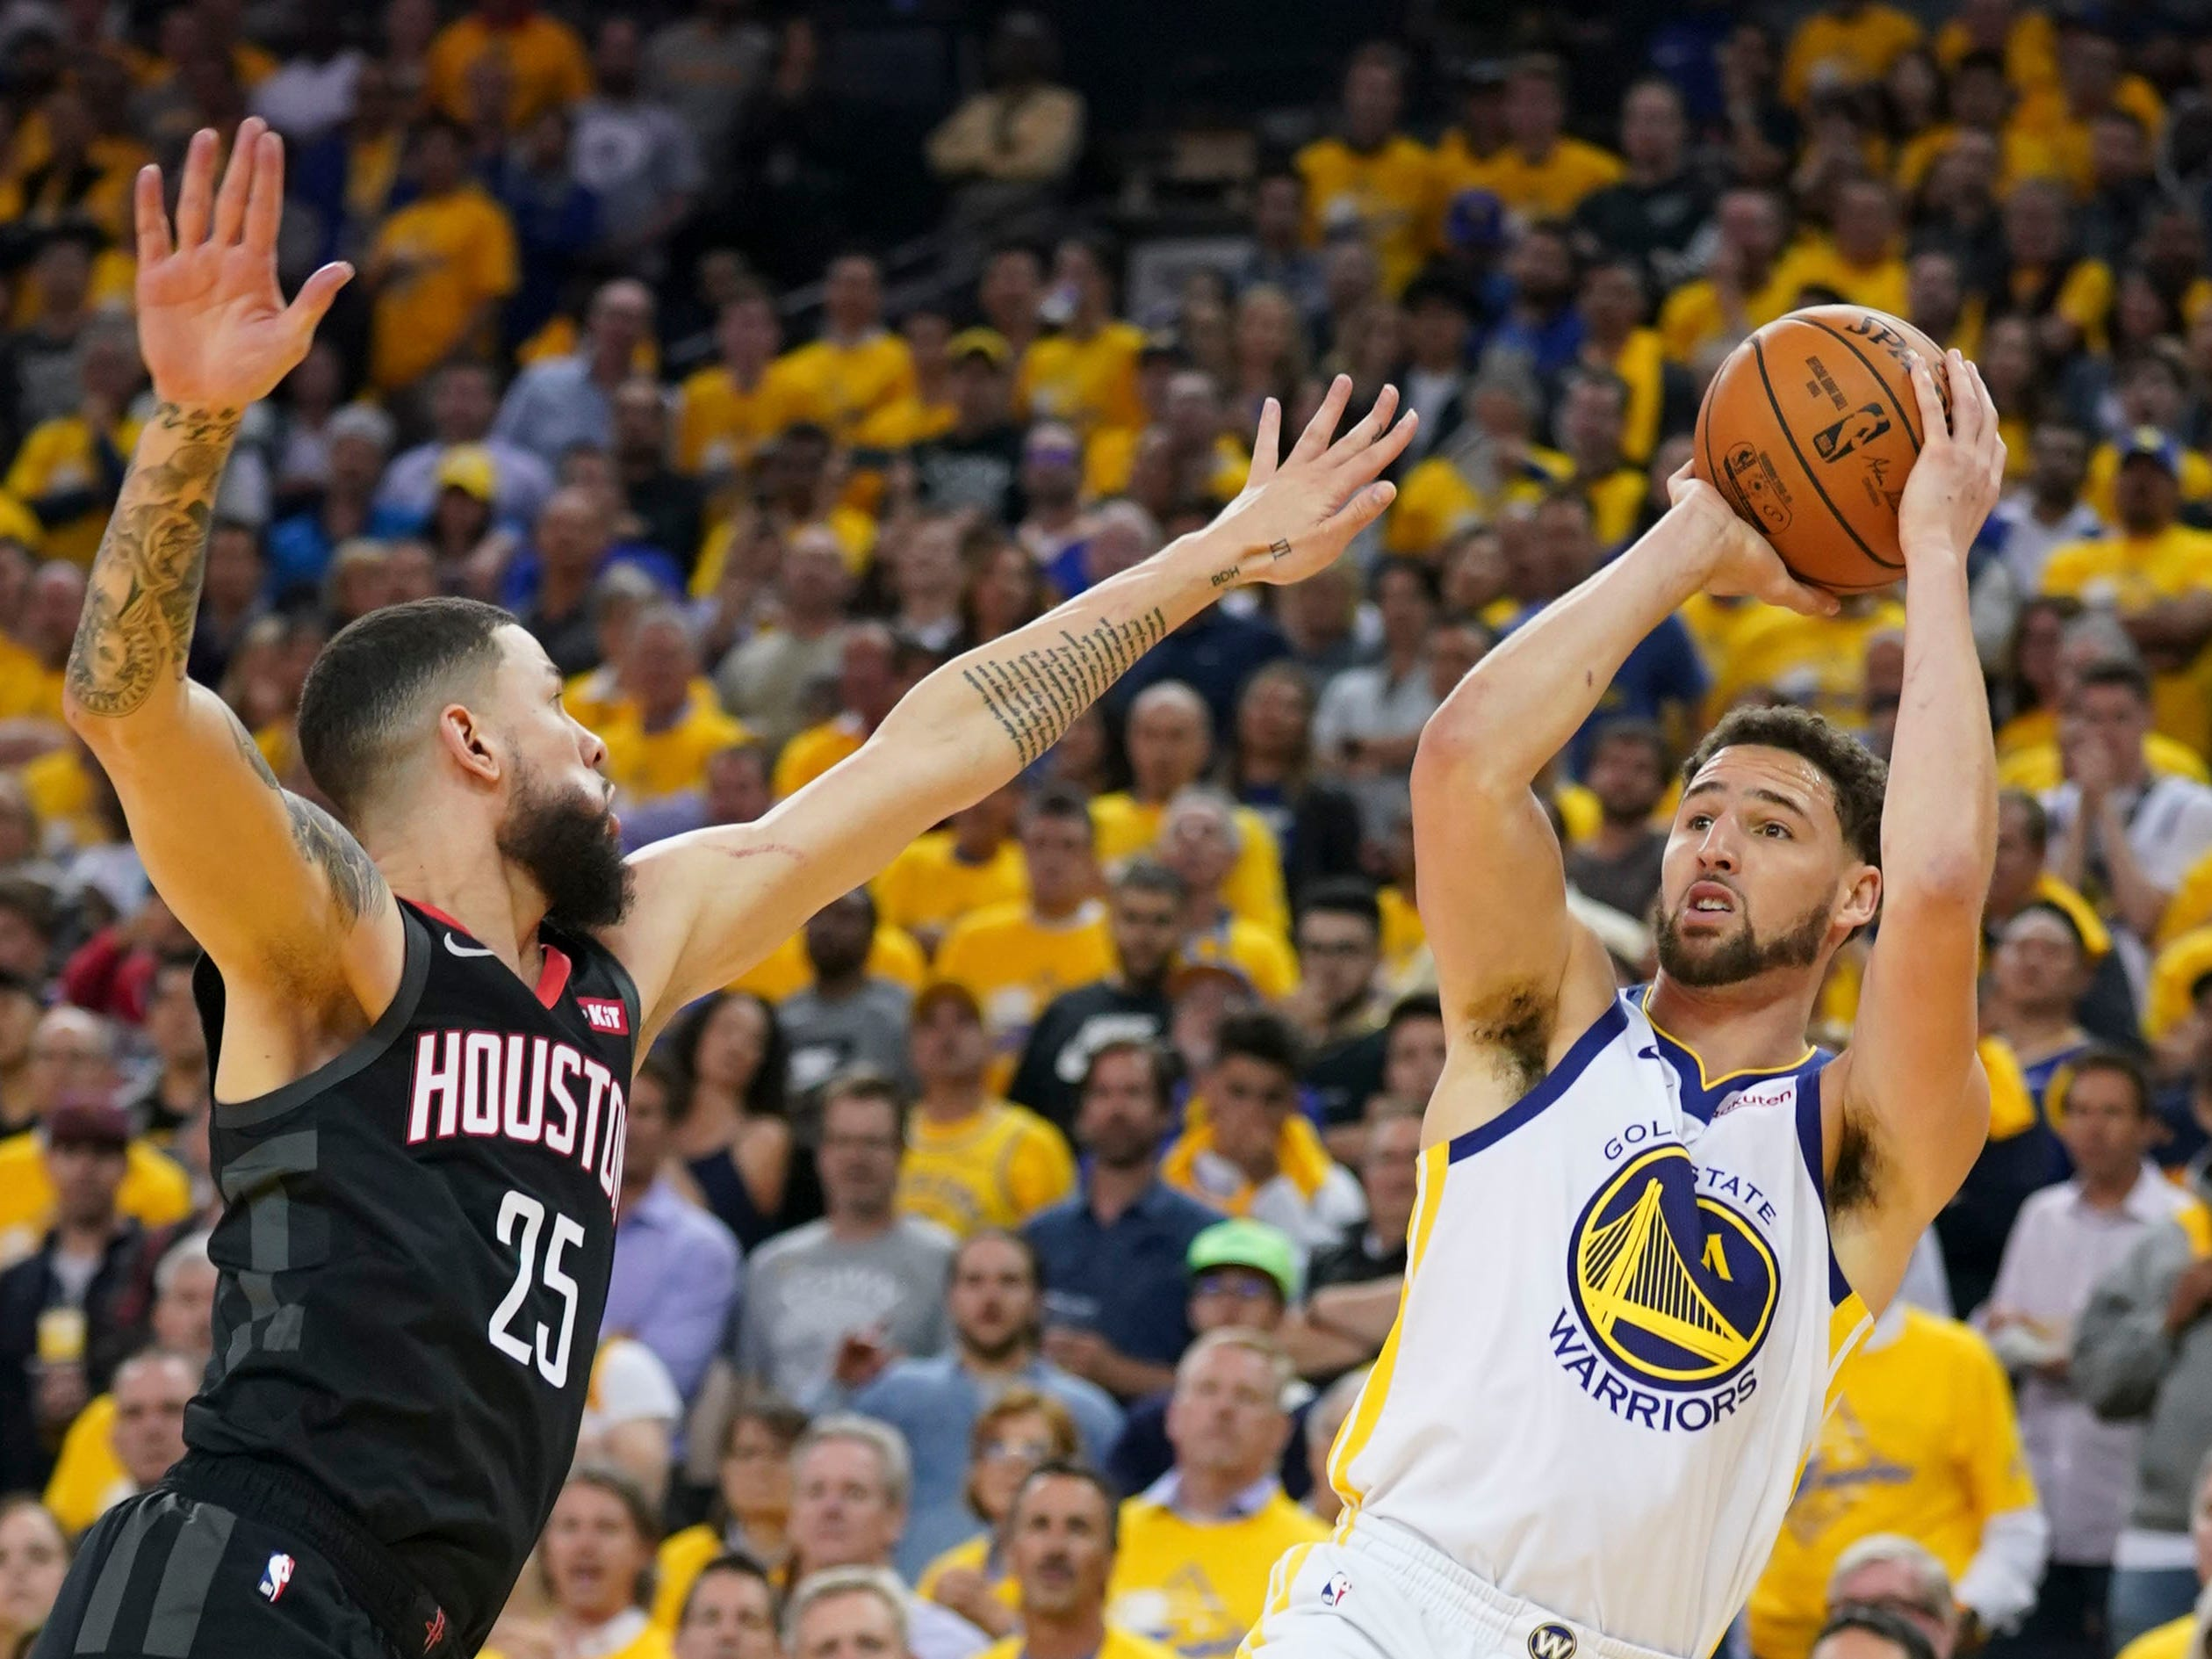 May 8: The Golden State Warriors' Klay Thompson shoots the basketball against Houston Rockets guard Austin Rivers during the fourth quarter of Game 5 at Oracle Arena. The Warriors won the game, 104-99, to take a 3-2 series lead.